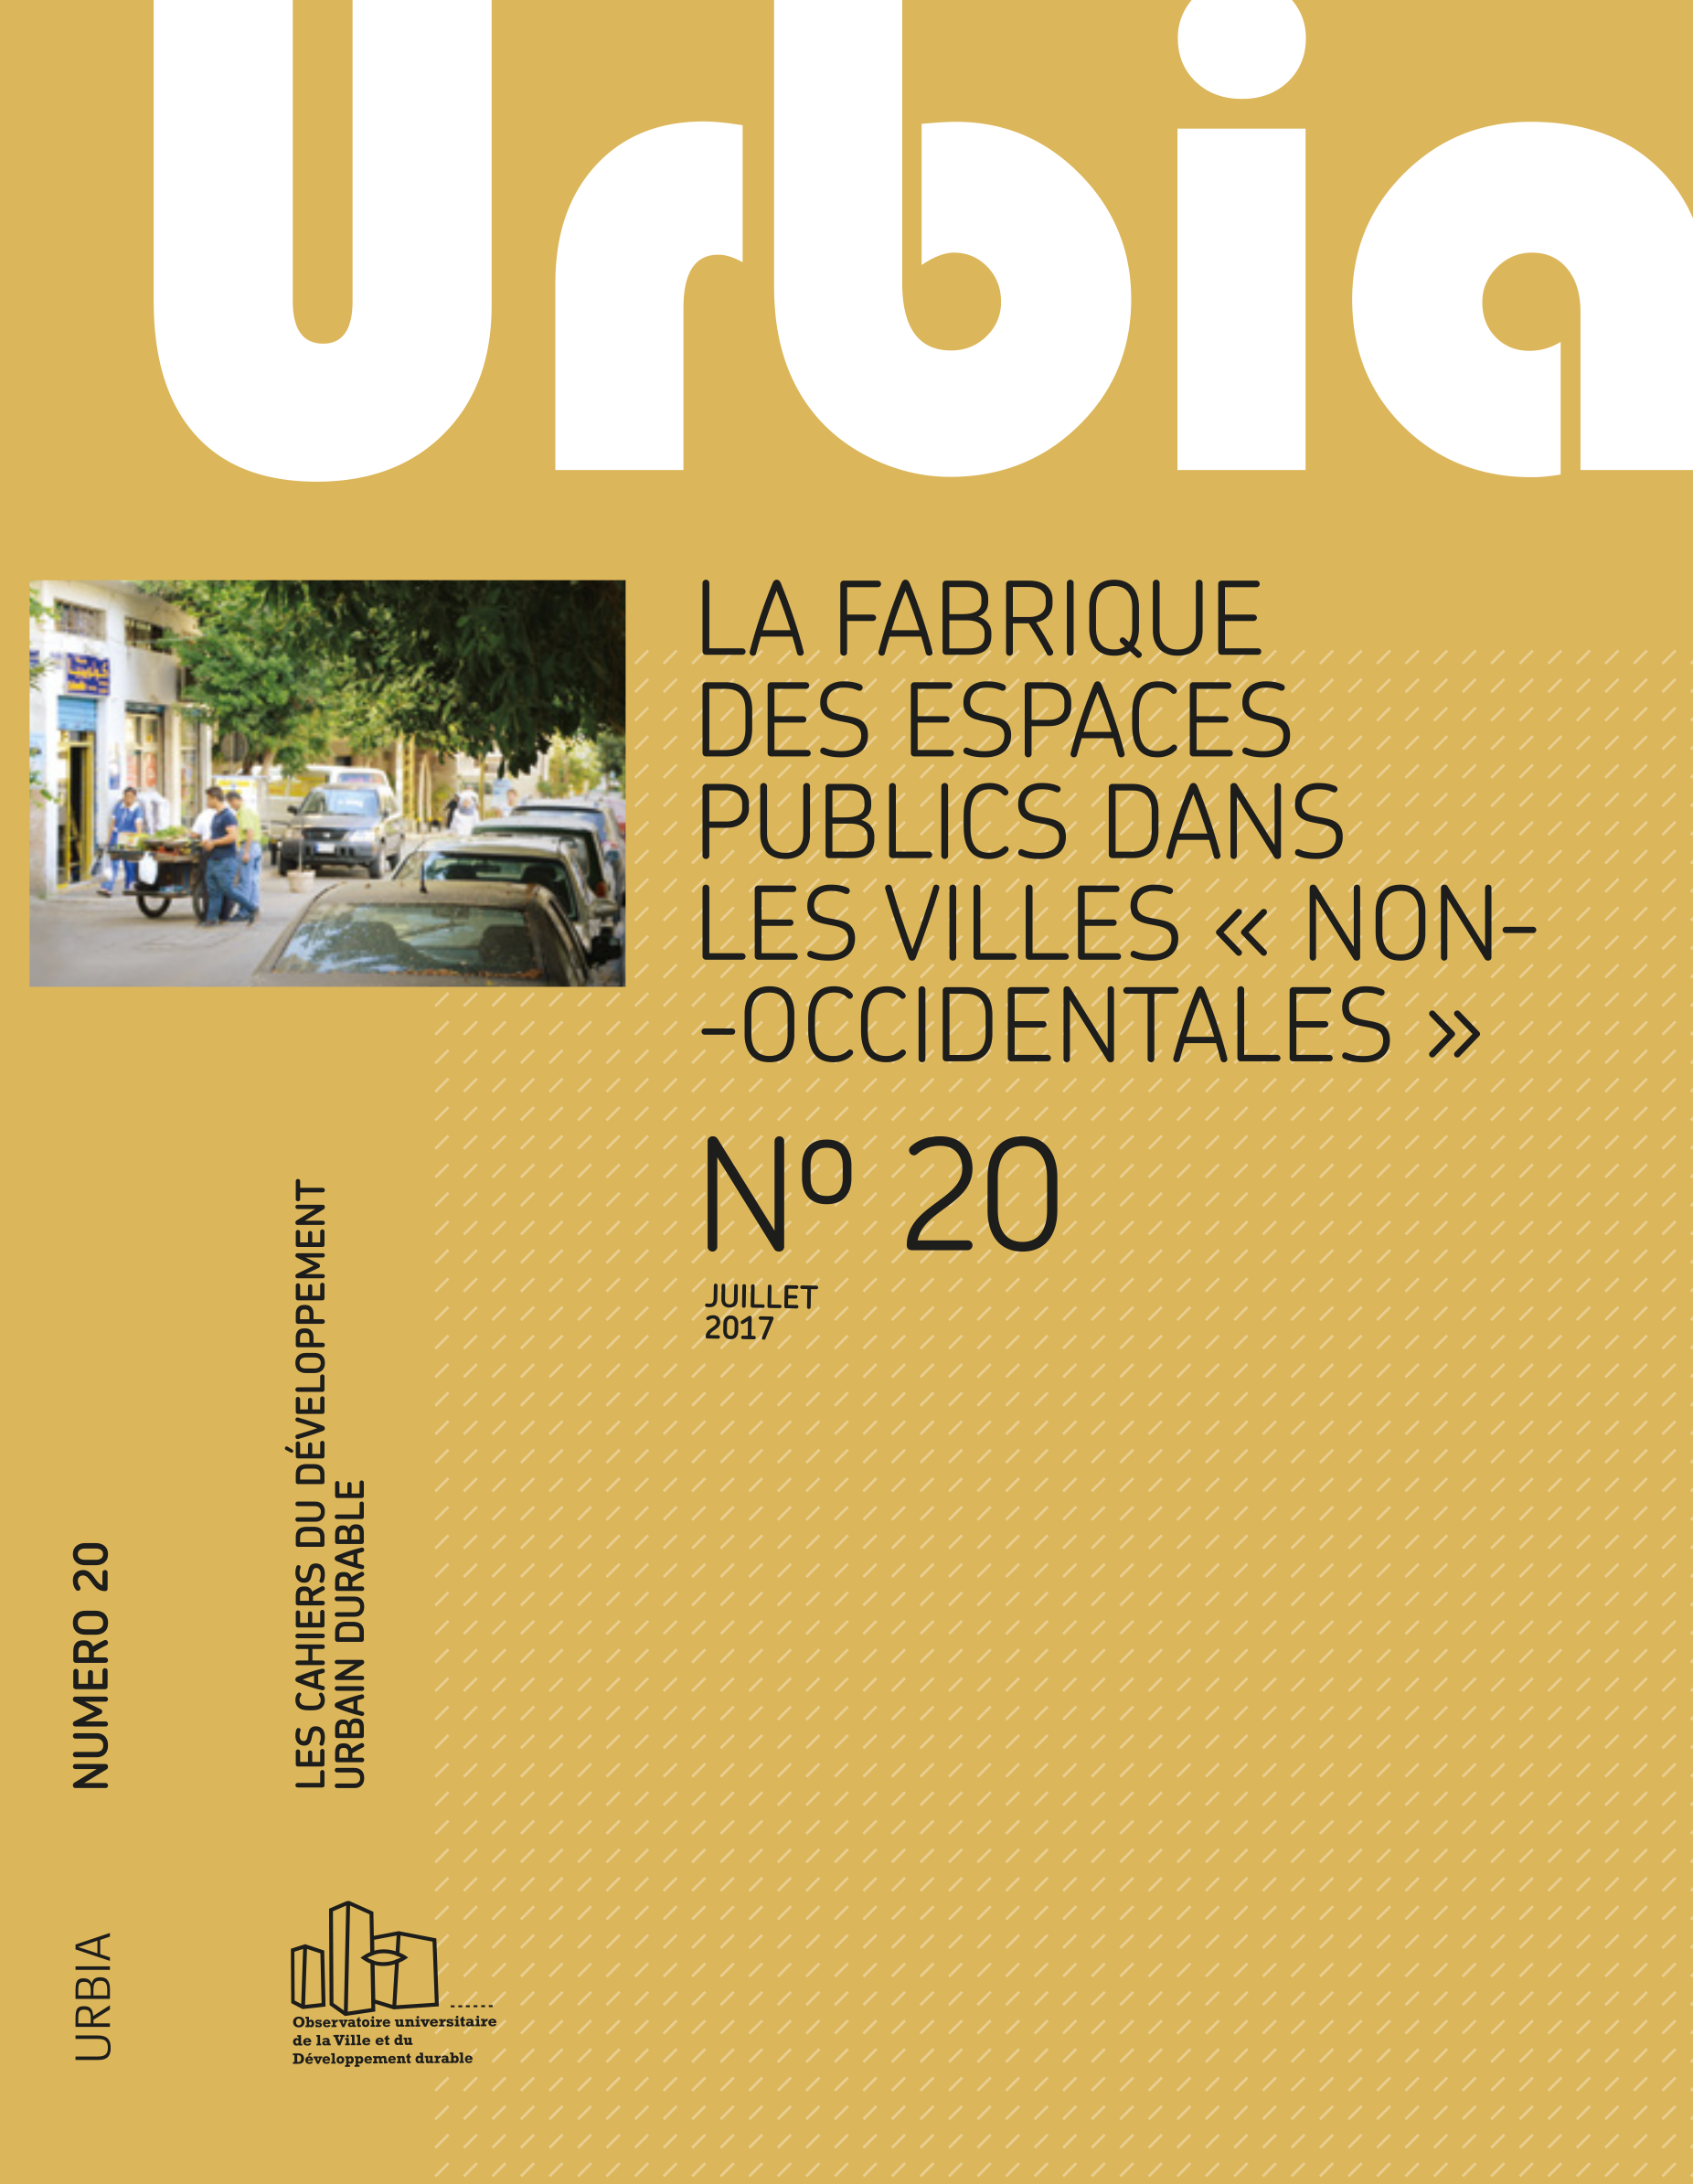 Couverture_no20.png